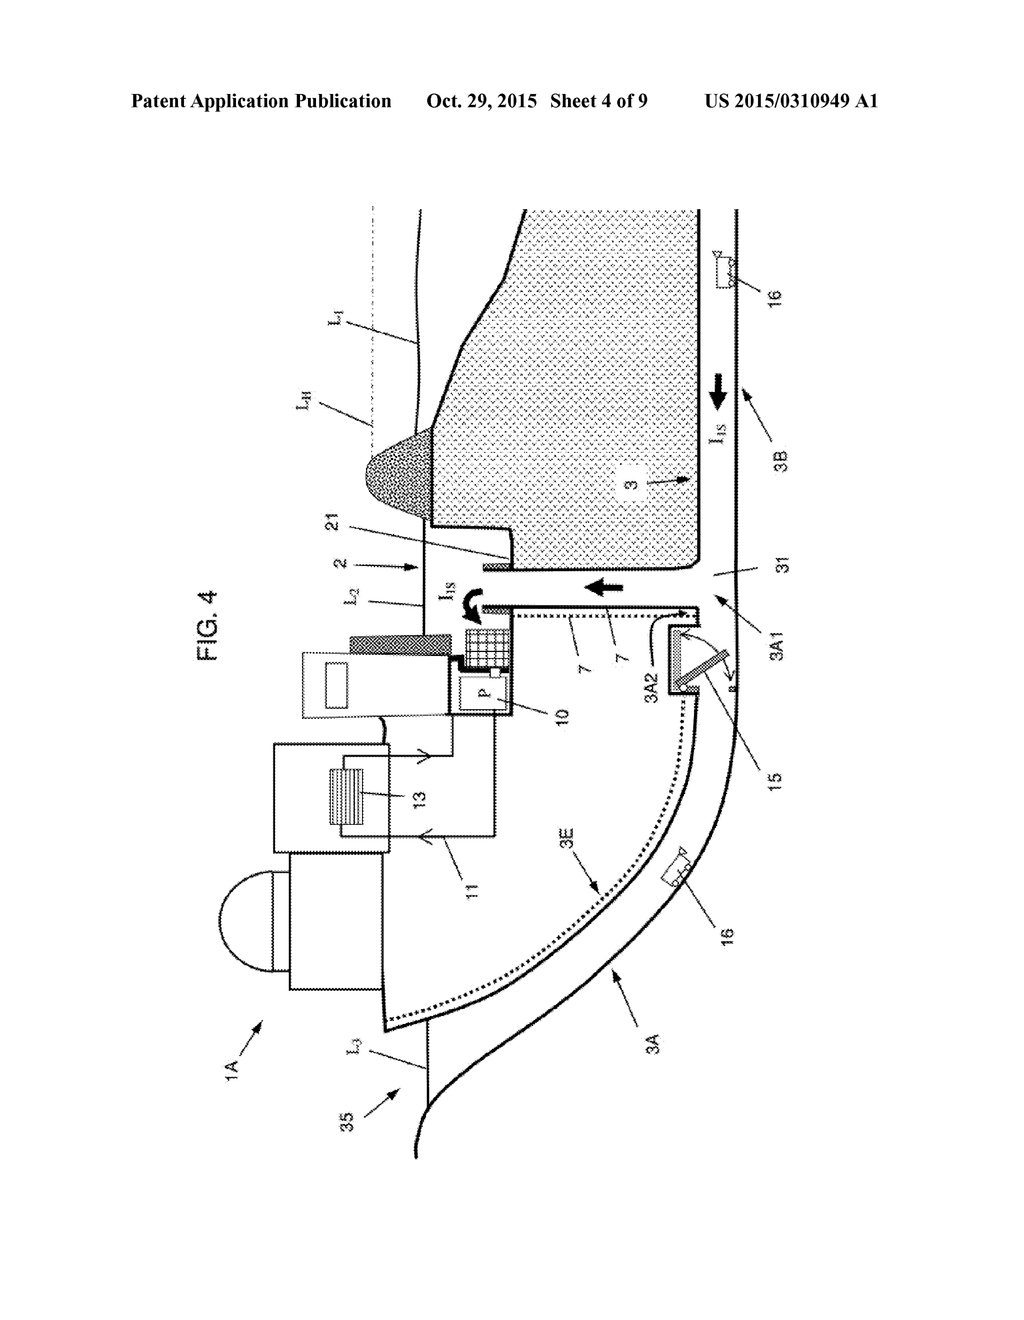 Water Intake Installation For Cooling A Nuclear Power Plant And Diagram Comprising Such An Schematic Image 05